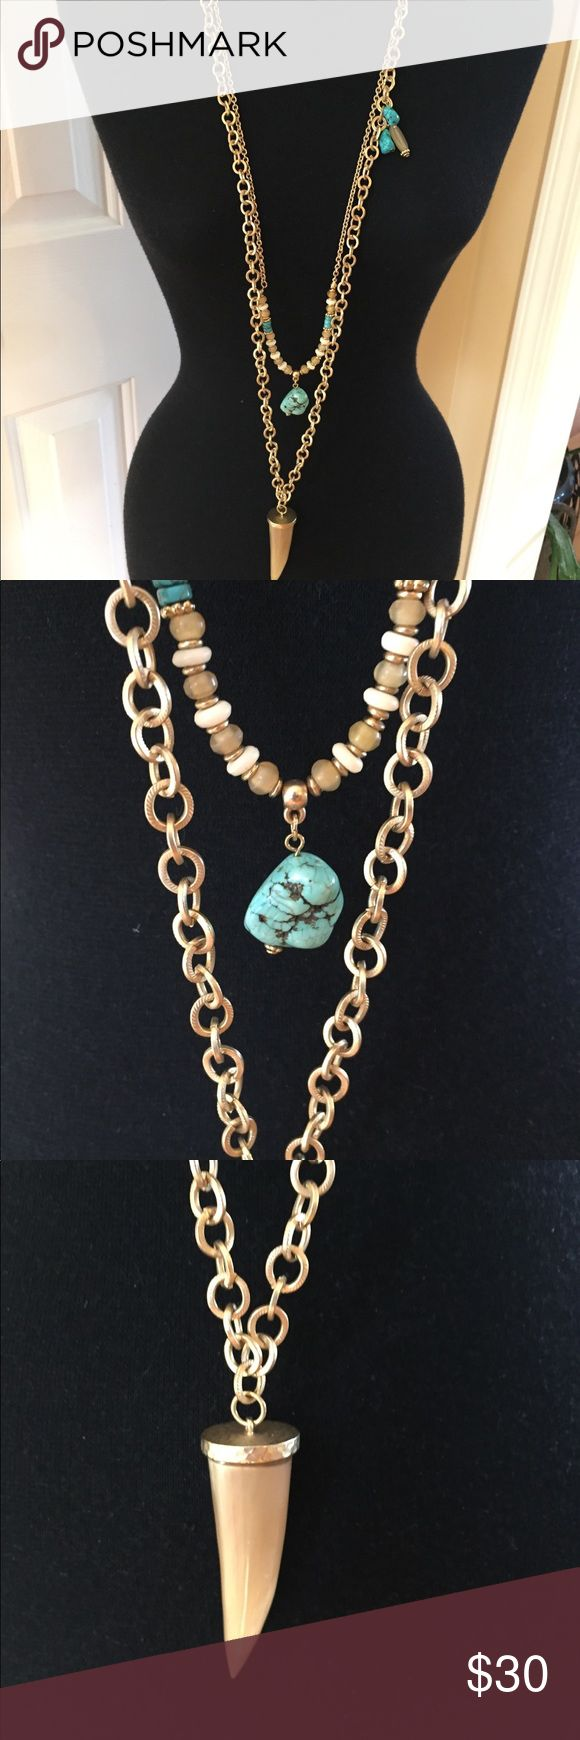 Chico's necklace gold Tone with faux turquoise This necklace is gorgeous and in outstanding condition! Chico's Jewelry Necklaces